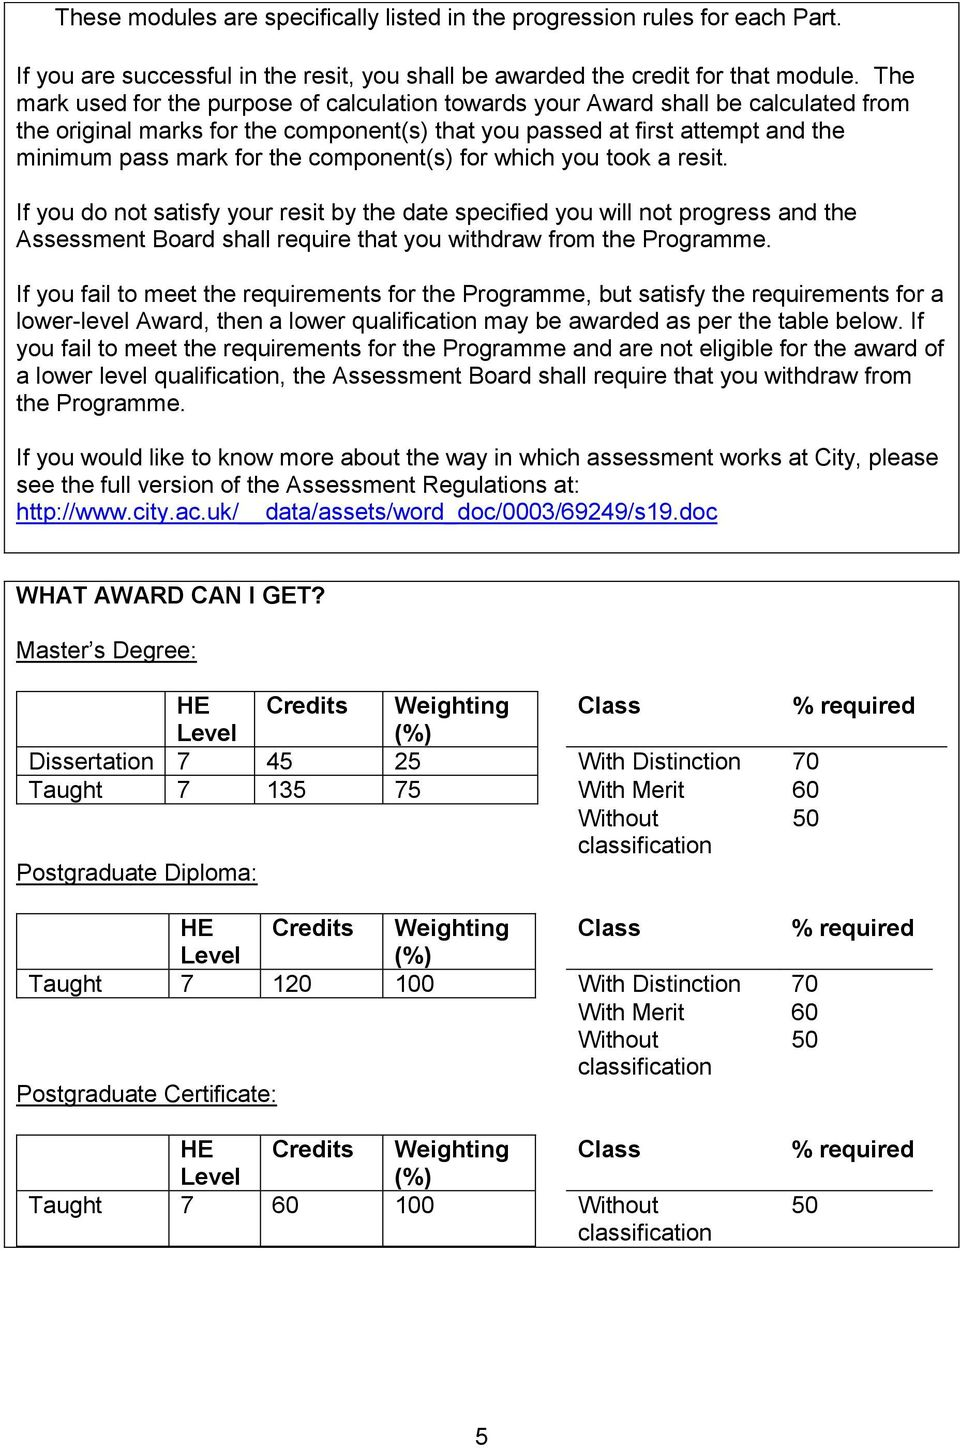 component(s) for which you took a resit. If you do not satisfy your resit by the date specified you will not progress and the Assessment Board shall require that you withdraw from the Programme.